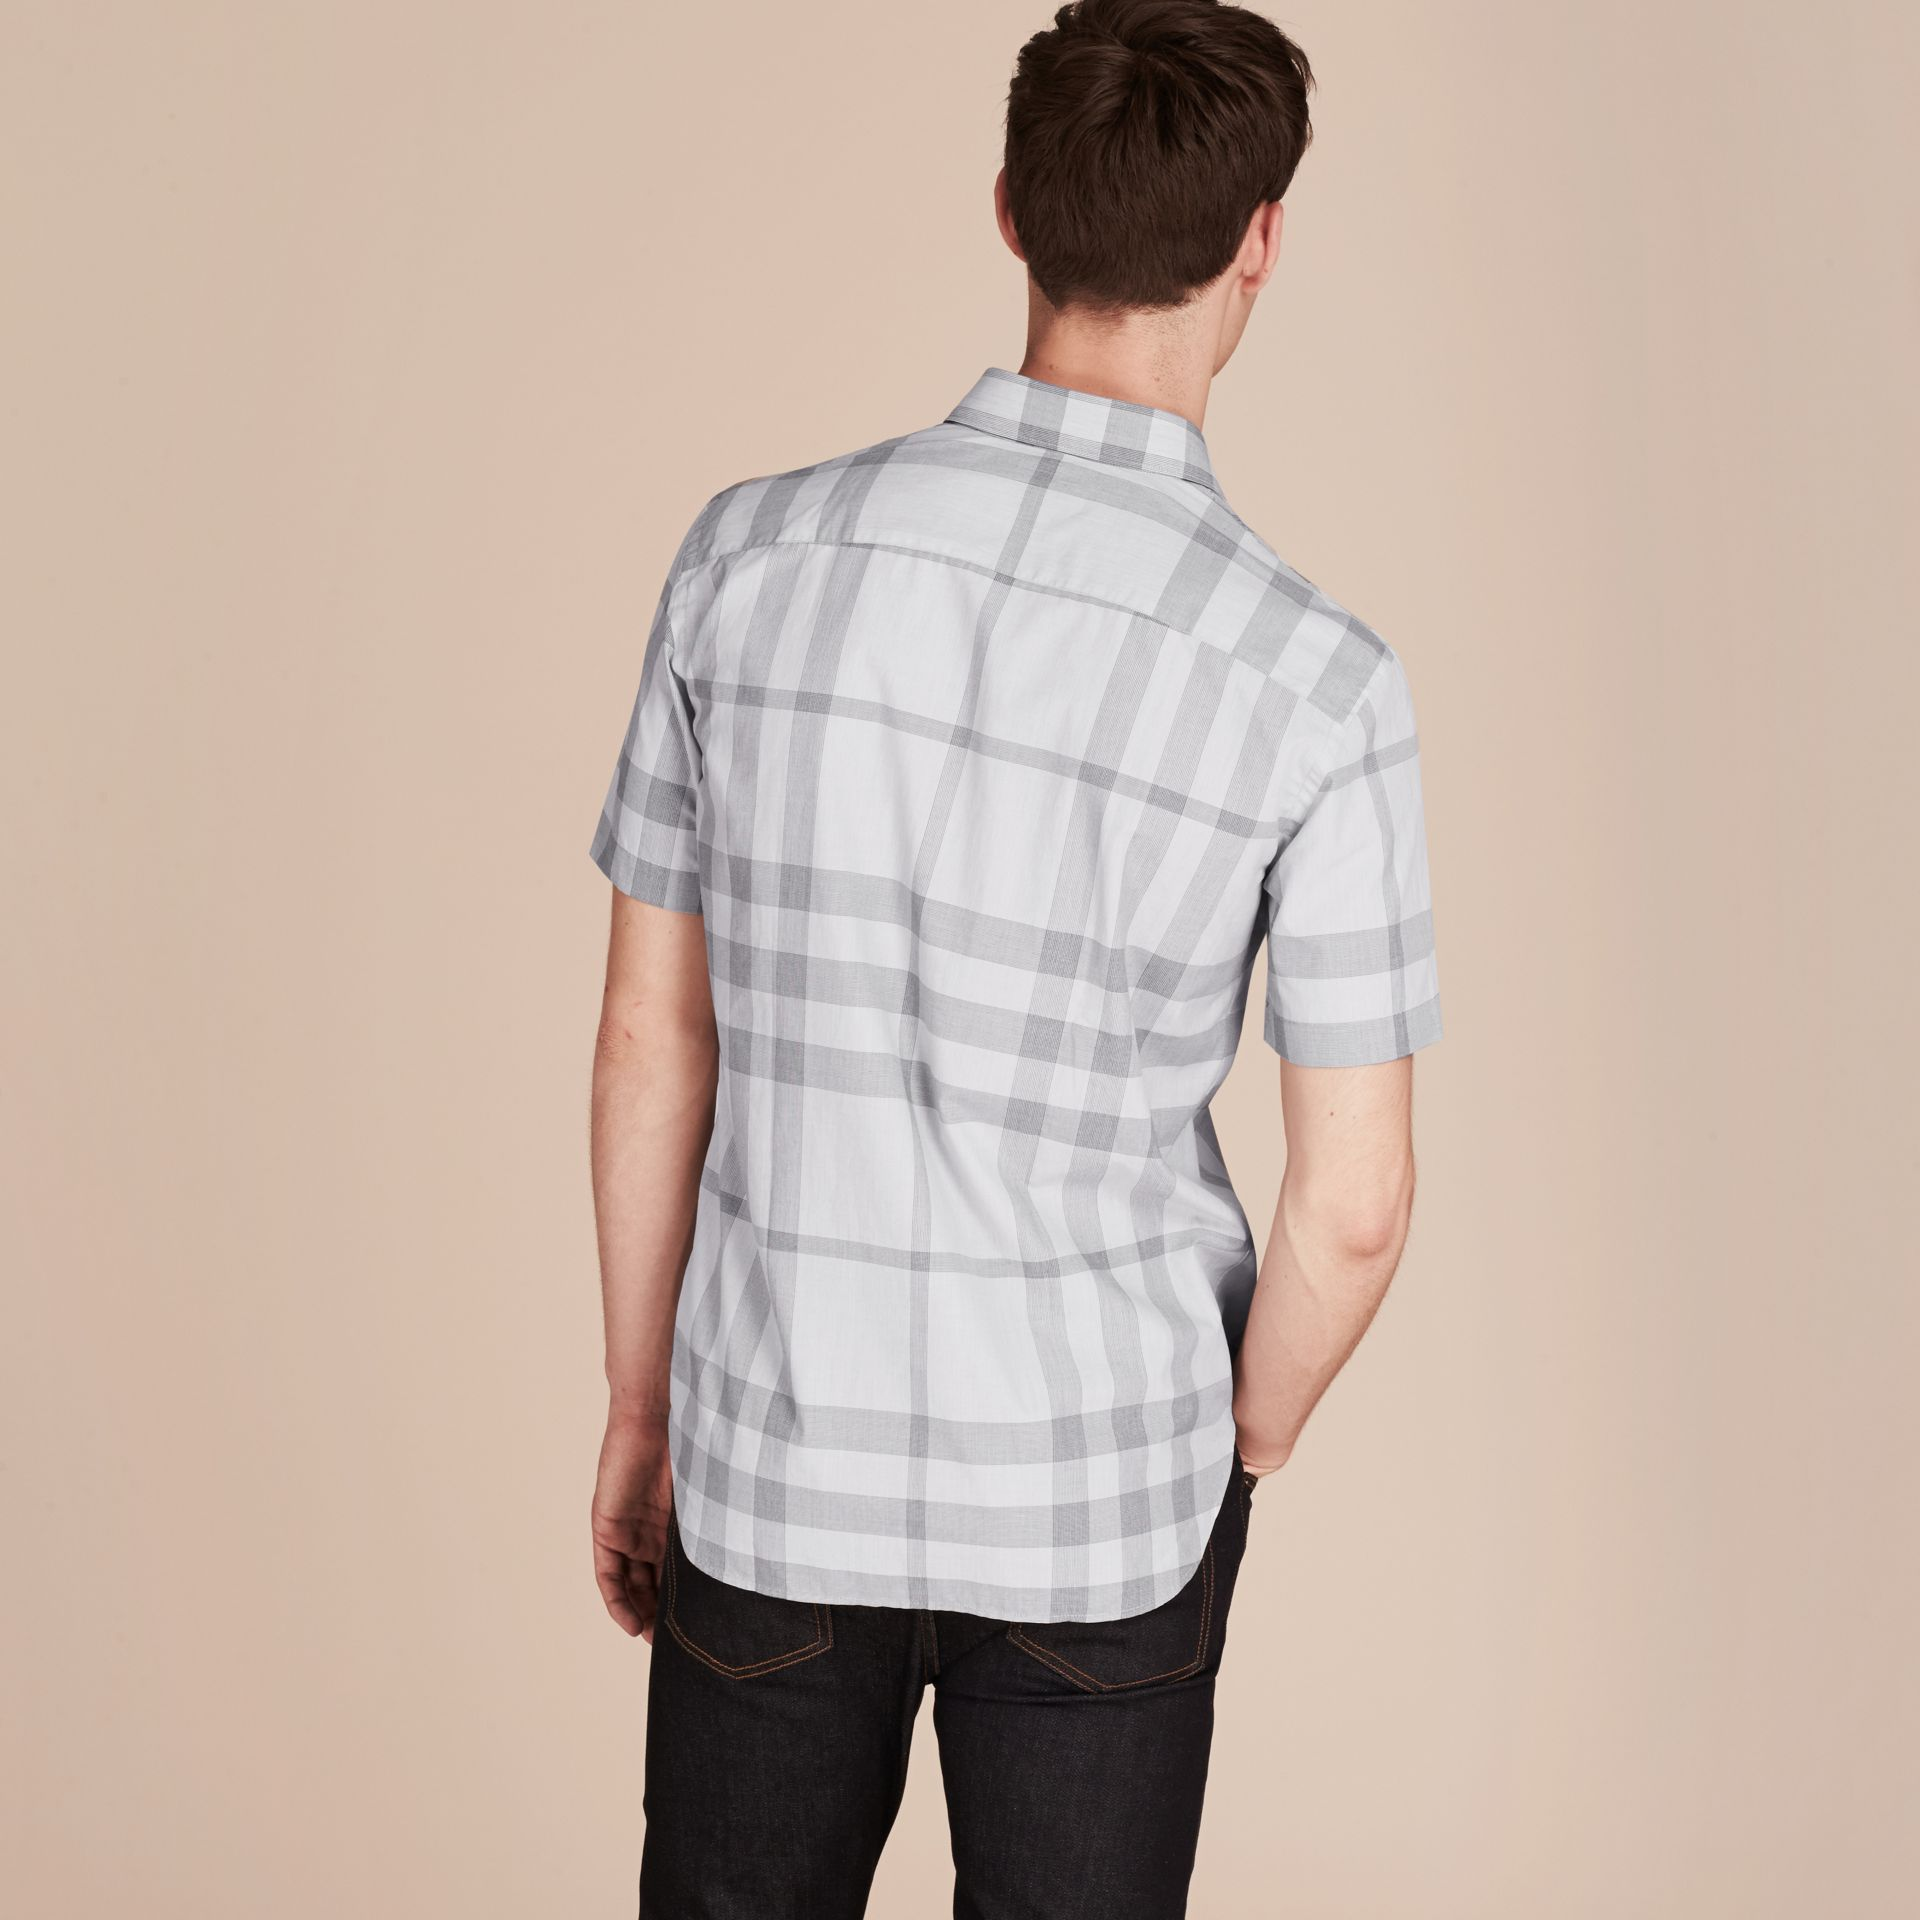 Pale grey Short-sleeved Check Cotton Shirt Pale Grey - gallery image 3